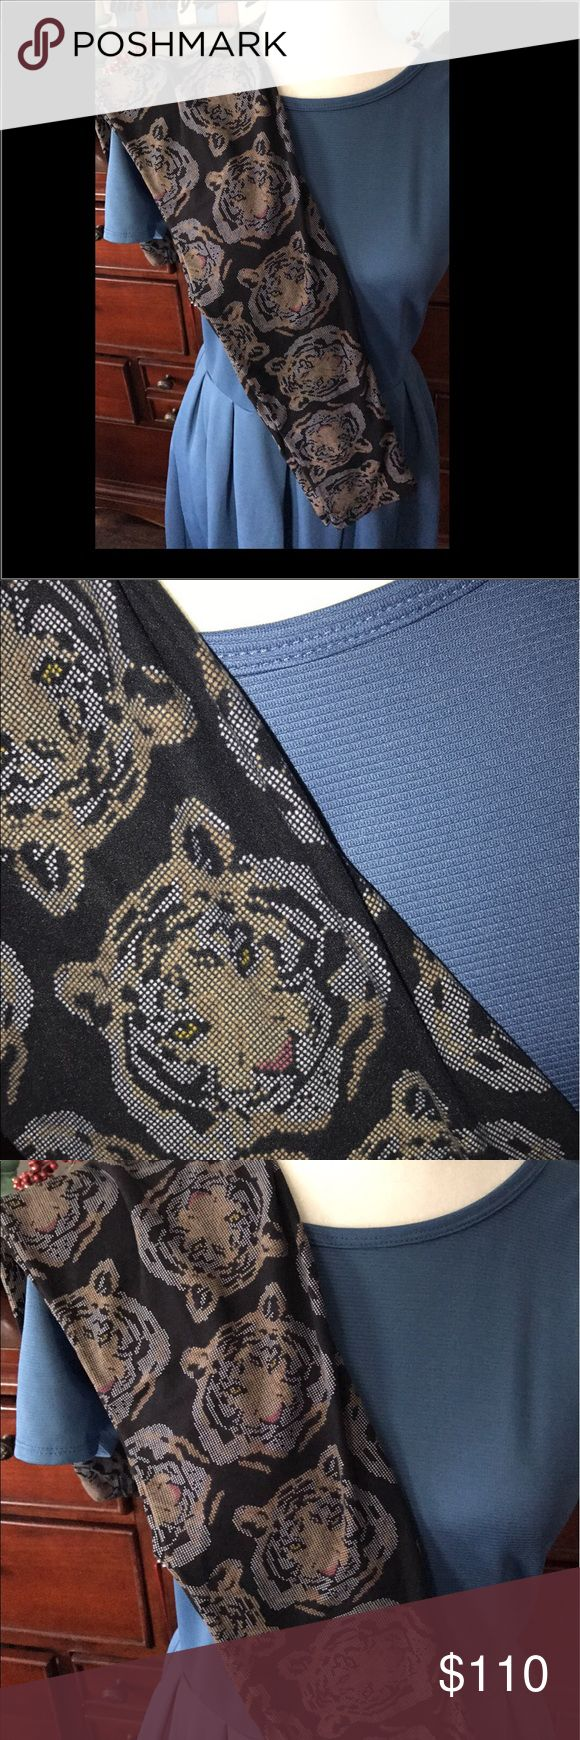 Lularoe digital tiger pixel OS +blue Amelia medium New without tags for both!!! No signs of wash or wear or use. Crotch shot included of leggings. Smoke free dog friendly home LuLaRoe Dresses